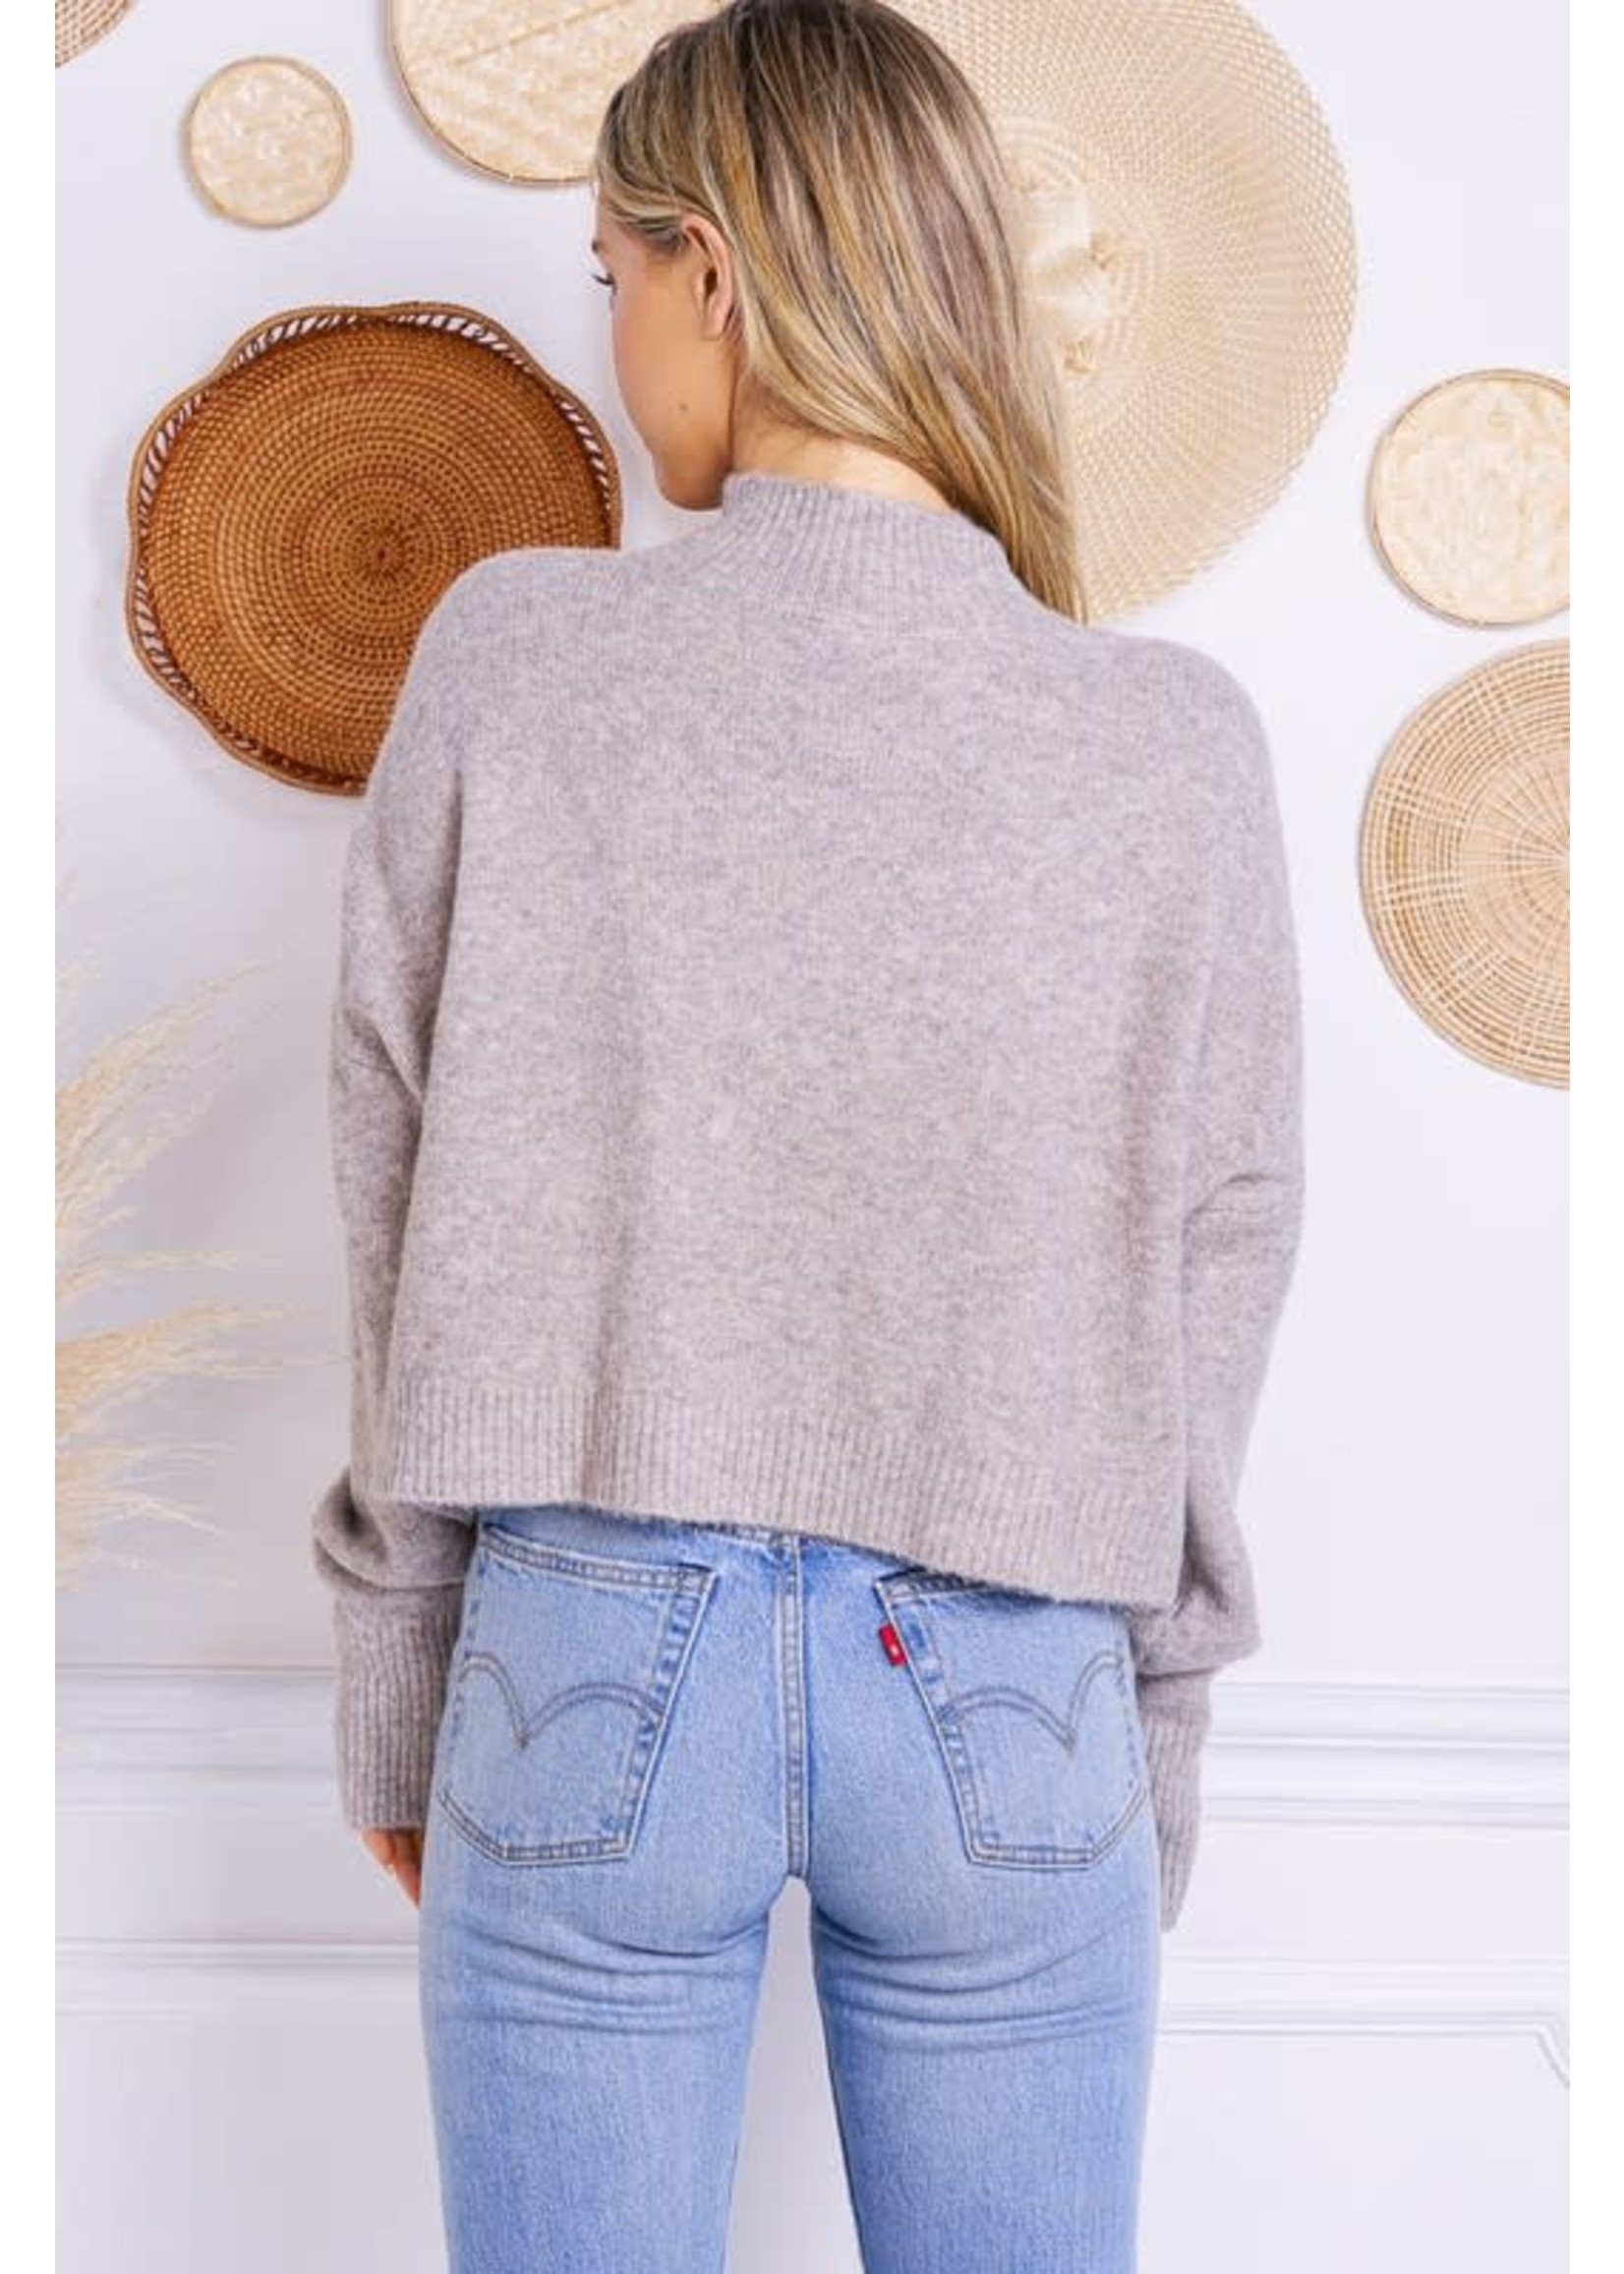 Charlotte Avery Cropped Mock Neck Pullover Sweater - H256